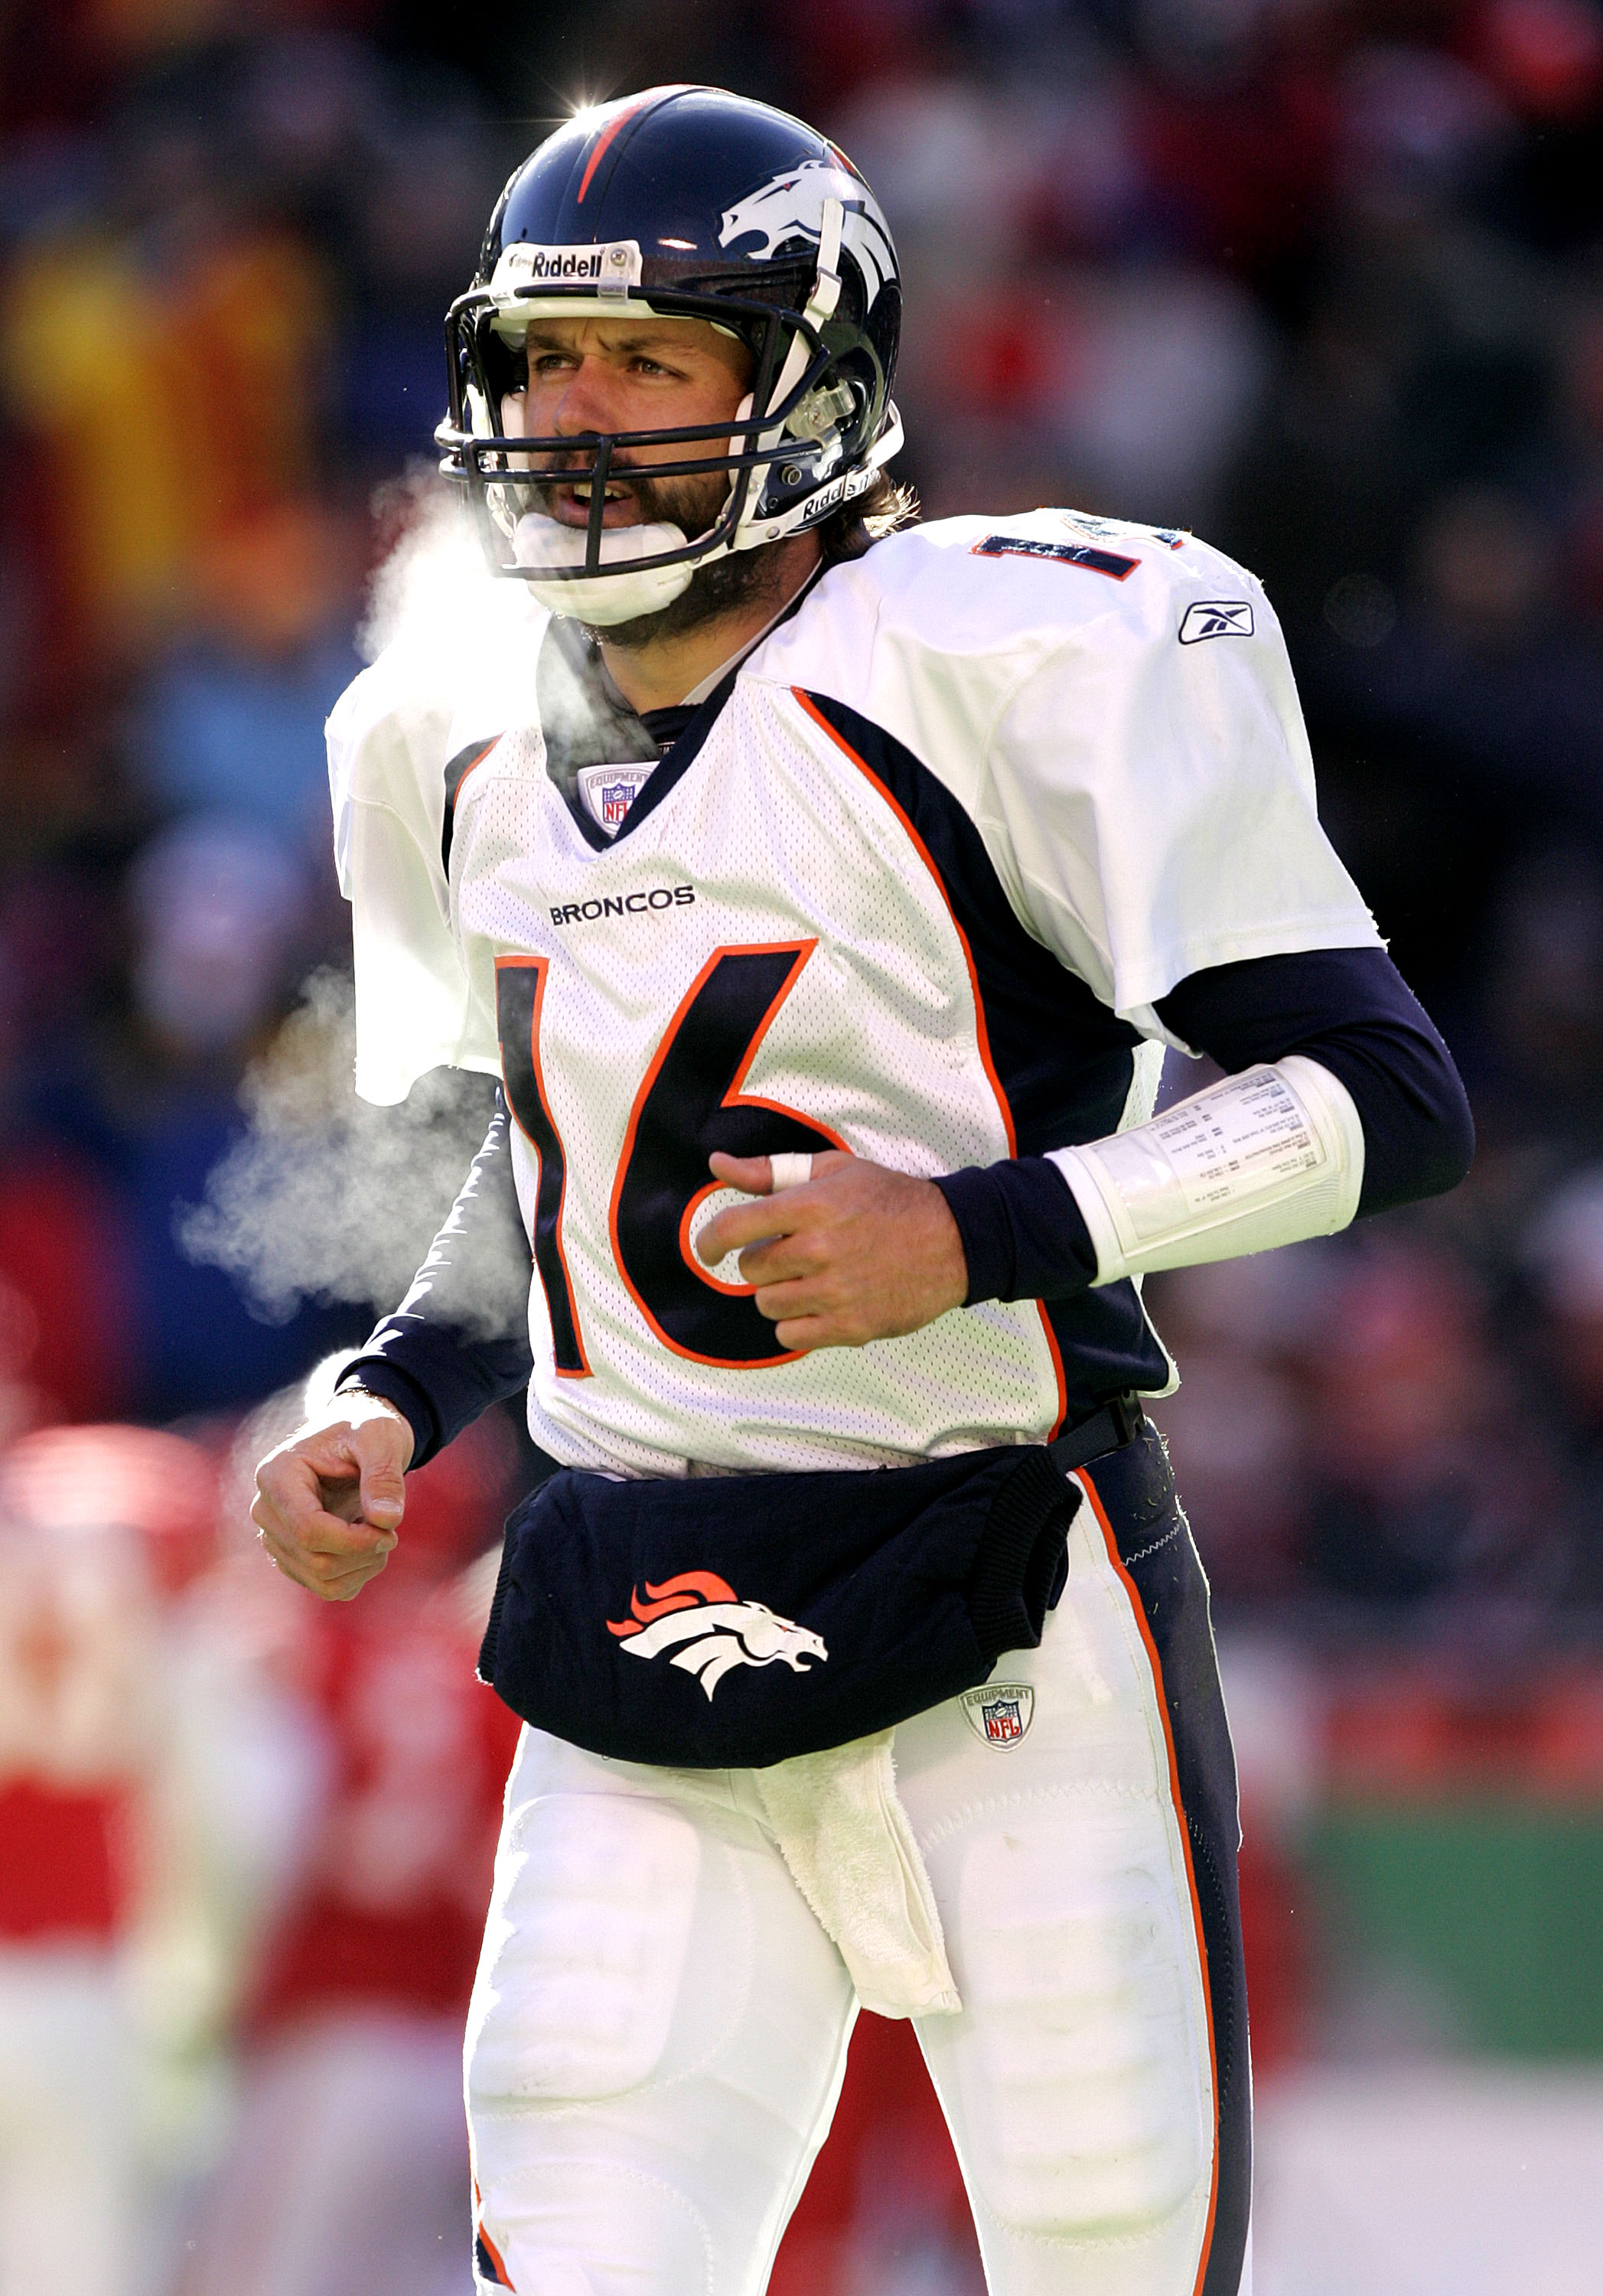 Quarterback Jake Plummer of the Denver Broncos at Arrowhead Stadium on Dec. 19, 2004. (credit: Brian Bahr/Getty Images)